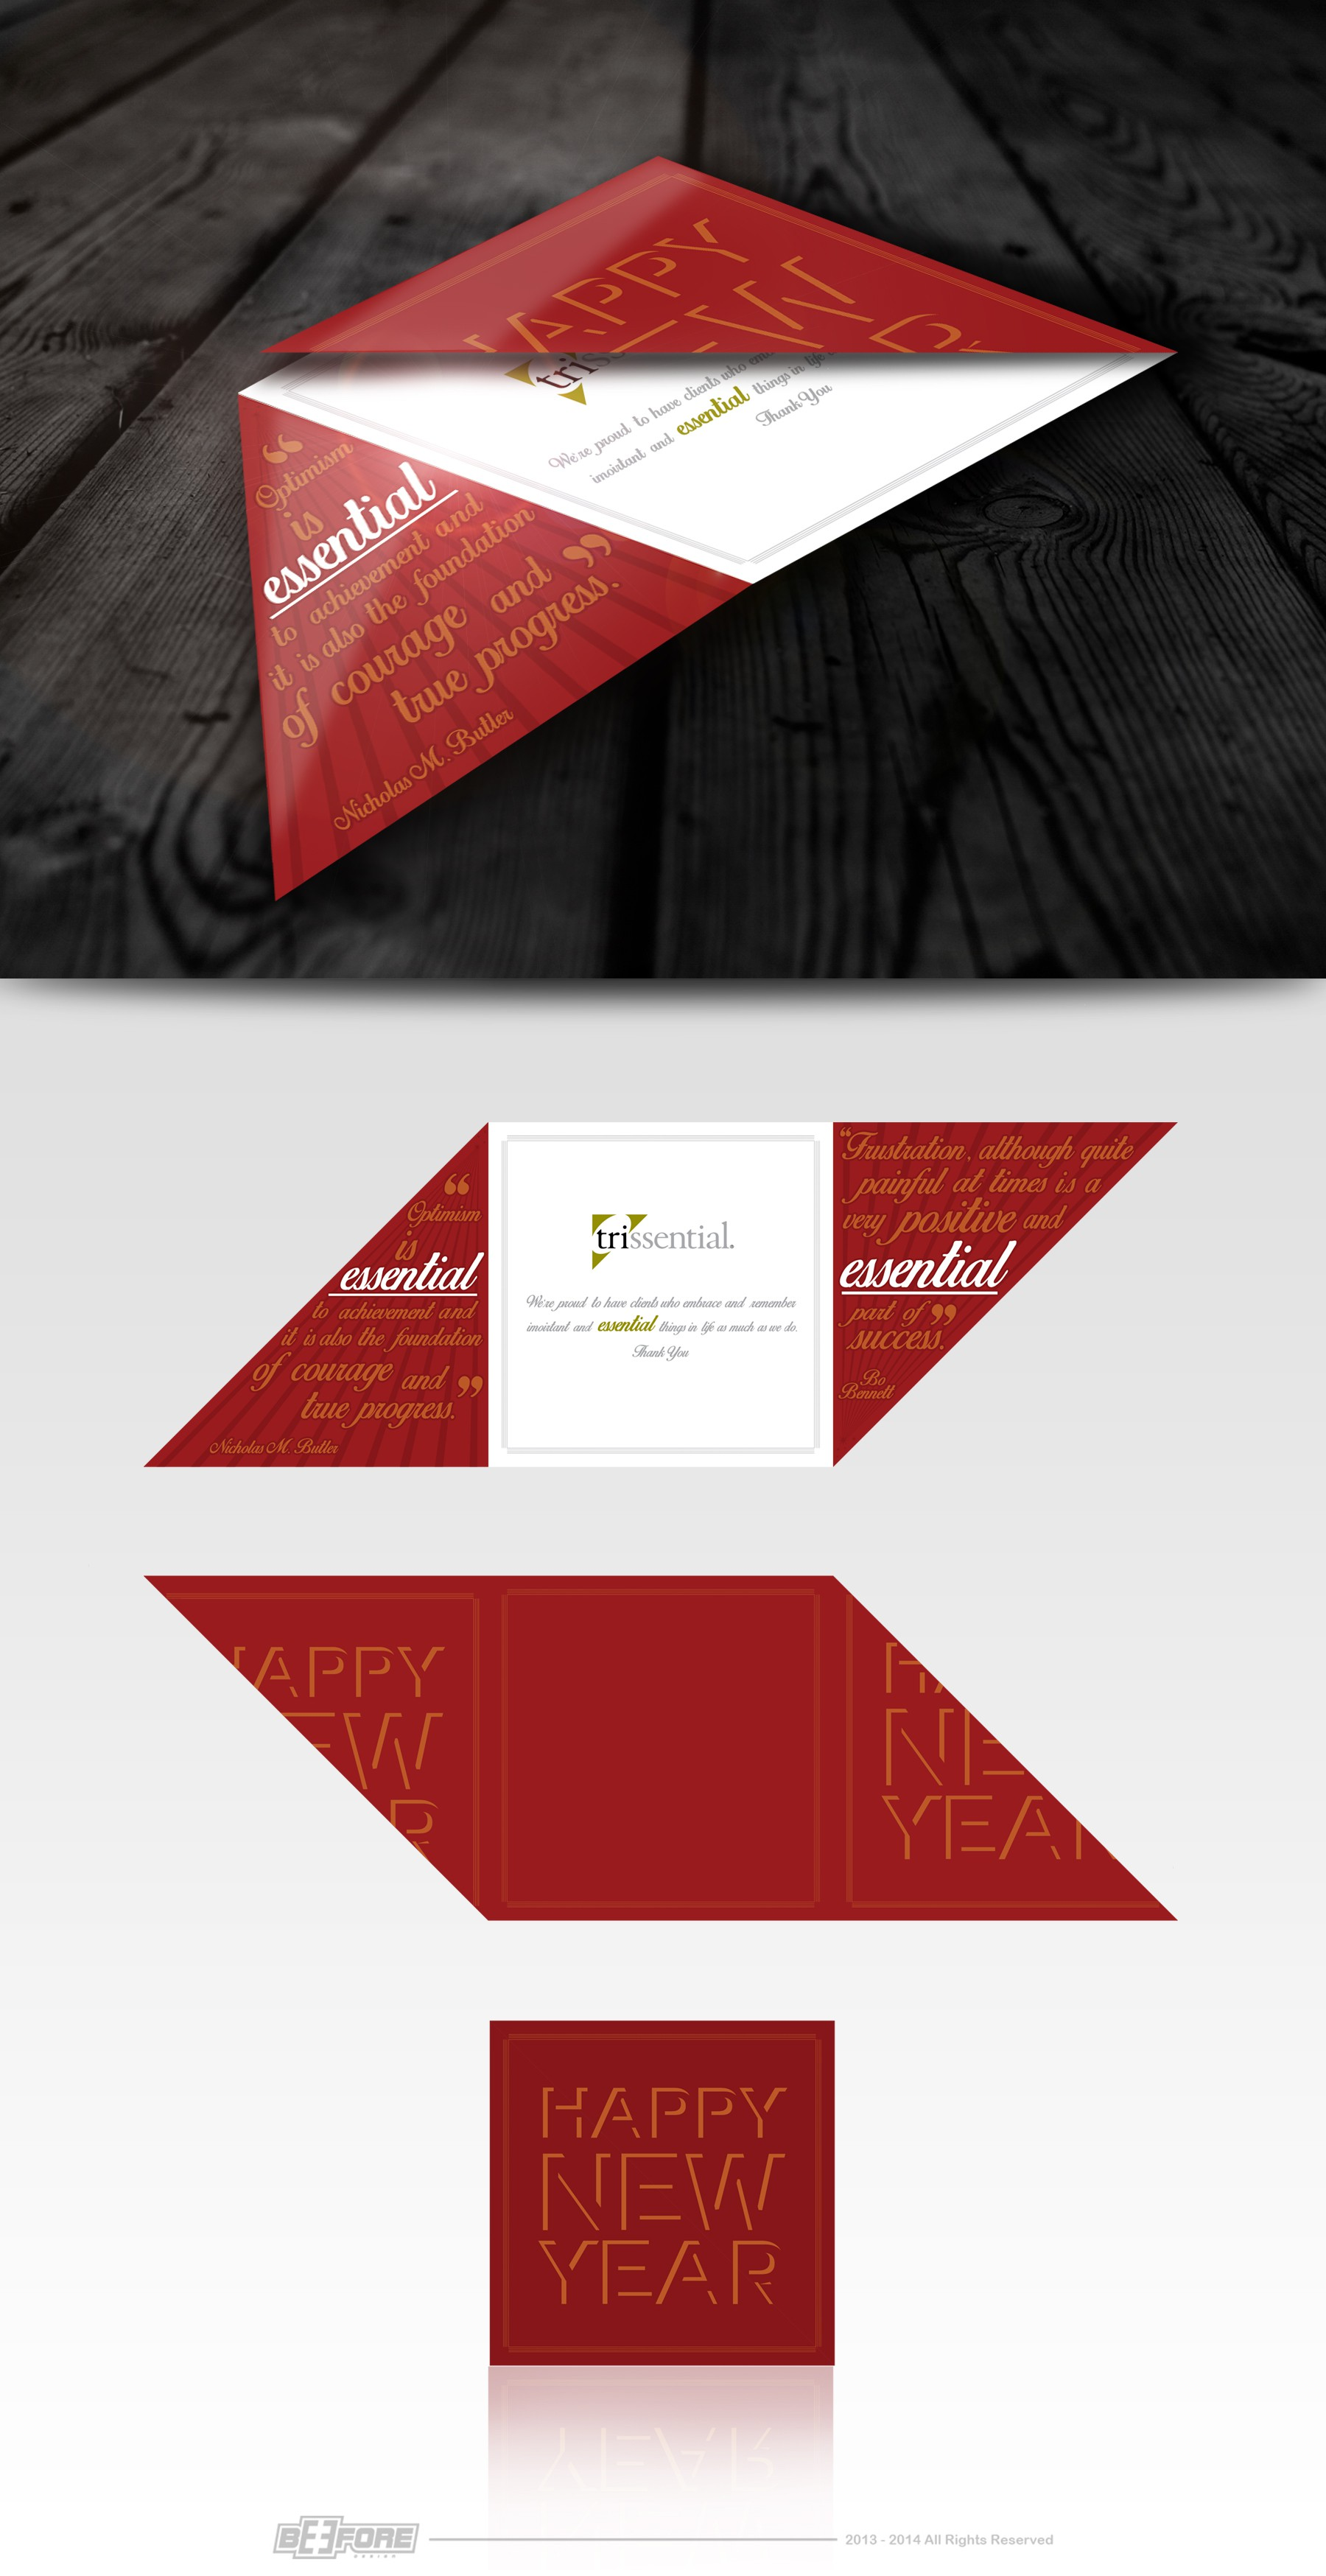 Trissential Holiday Card Design